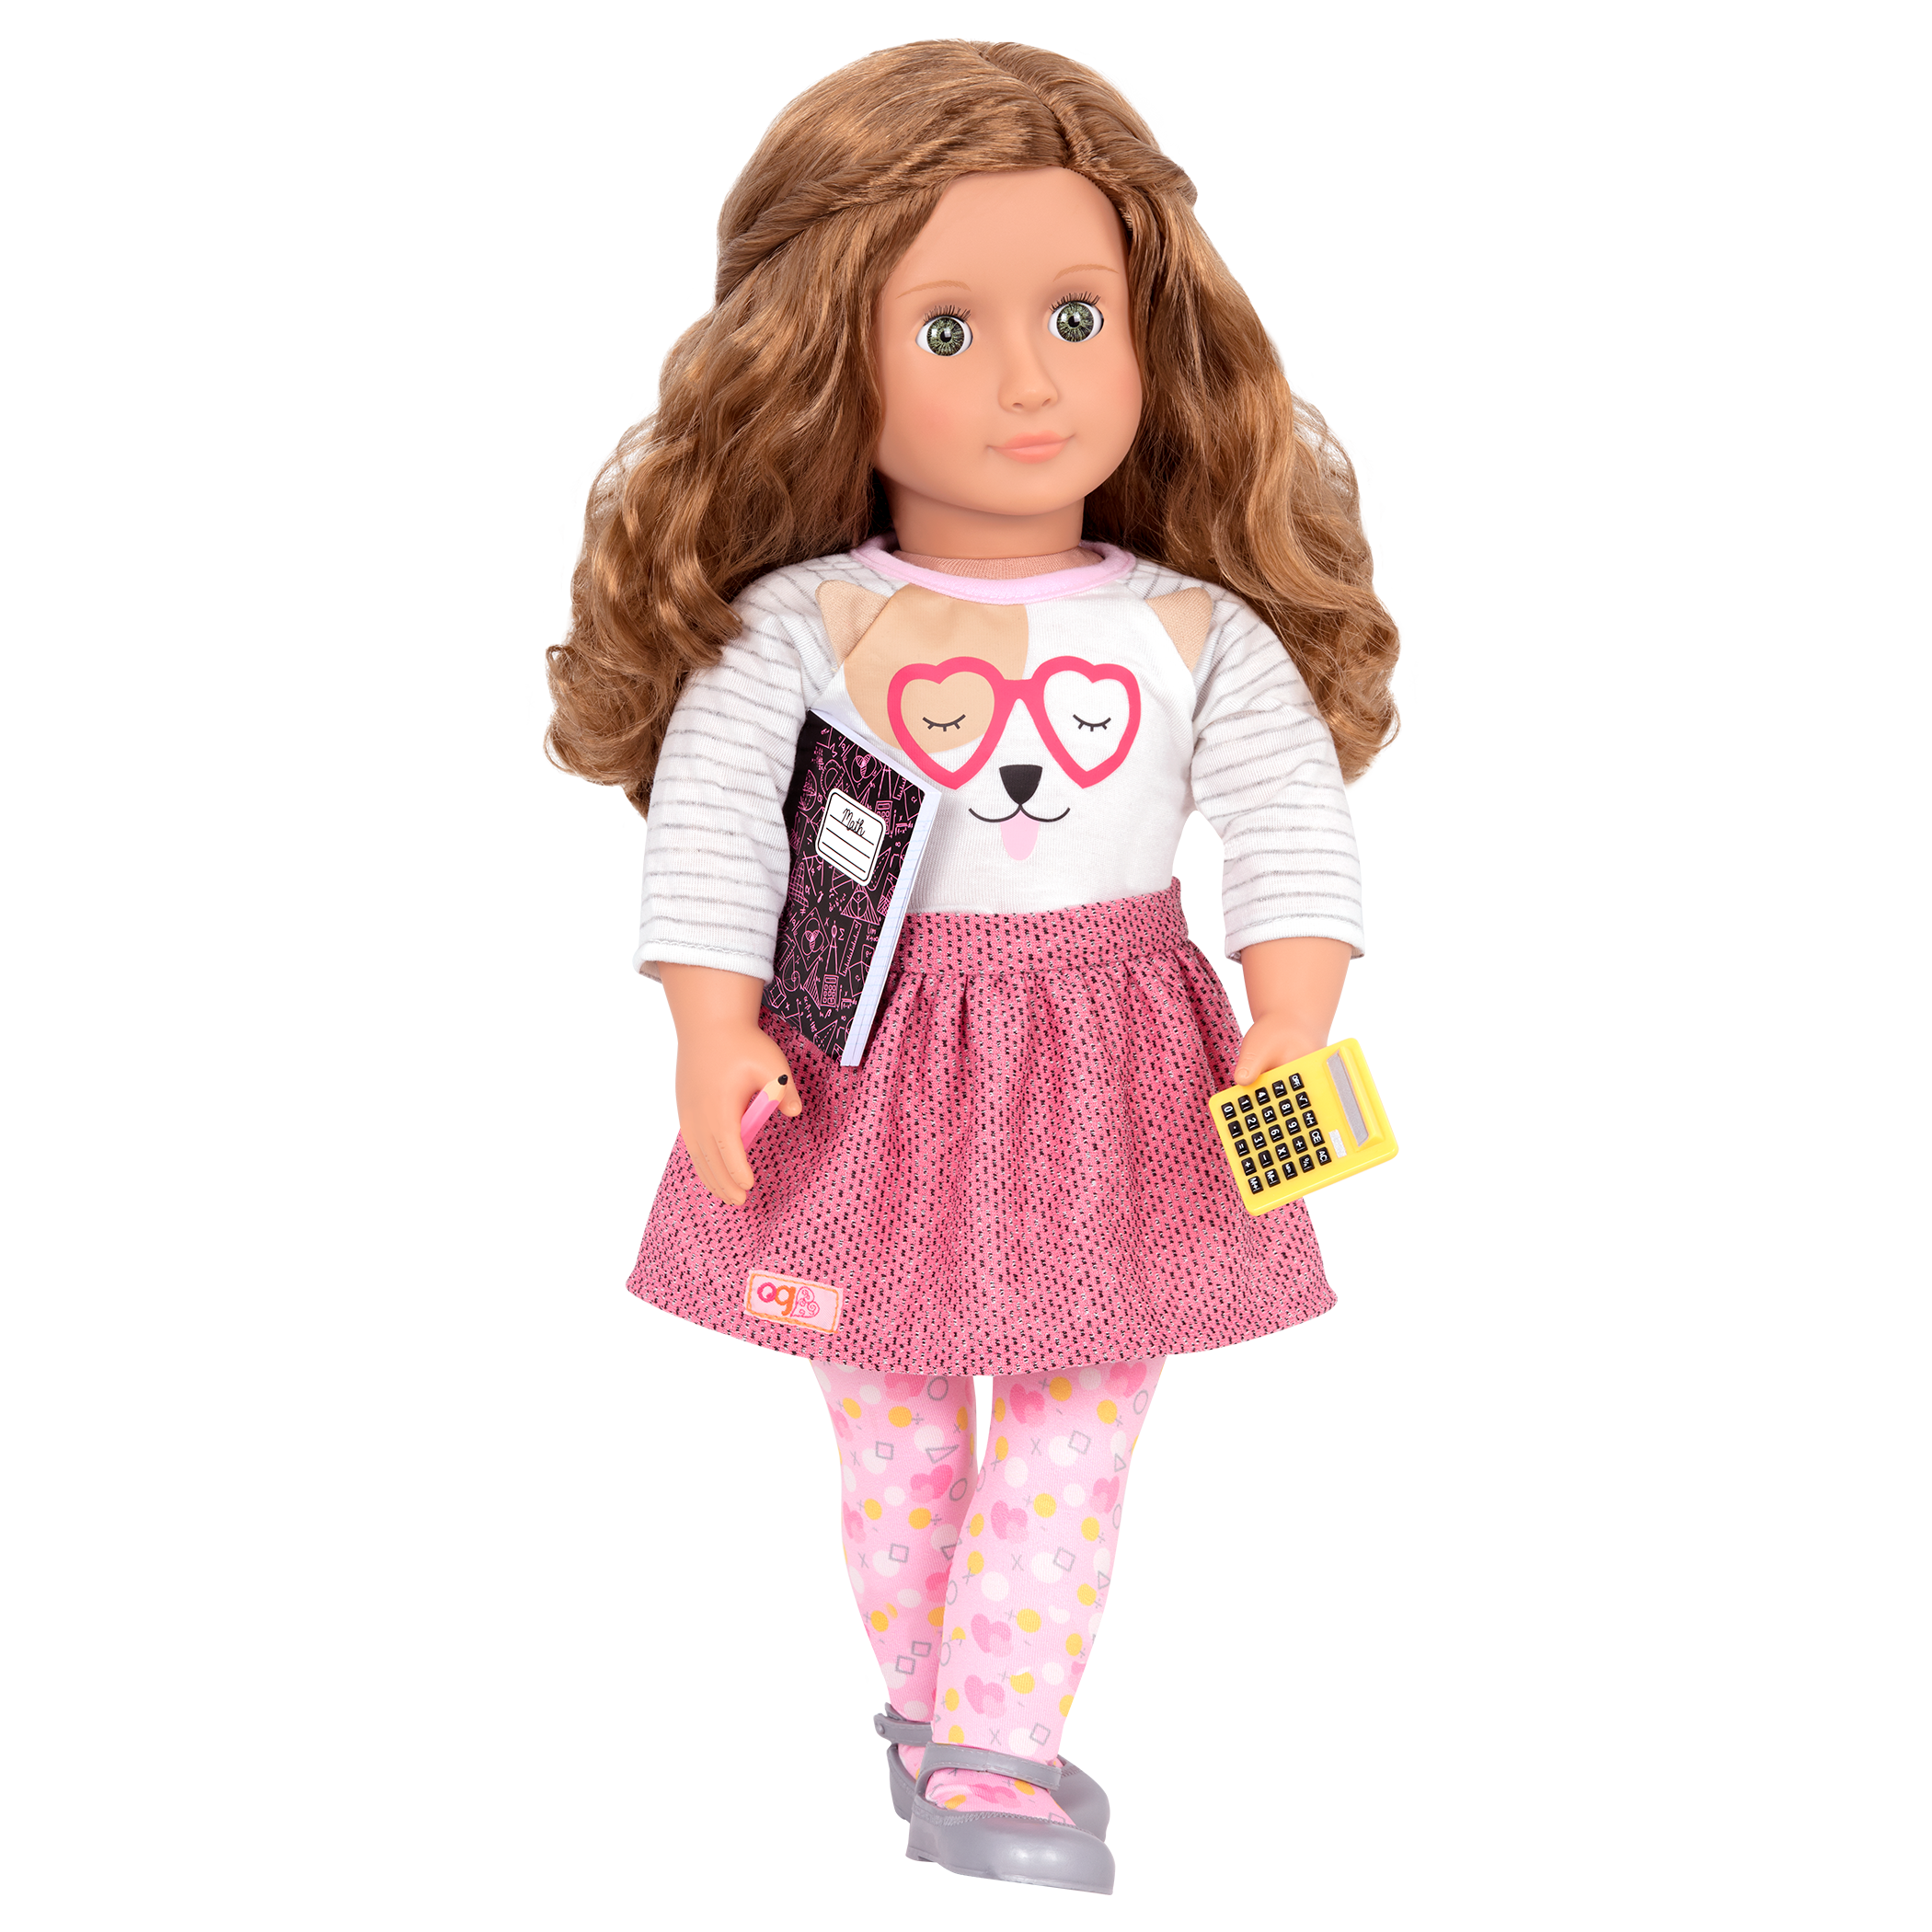 Lucy Grace wearing Classroom Cutie outfit with school supplies